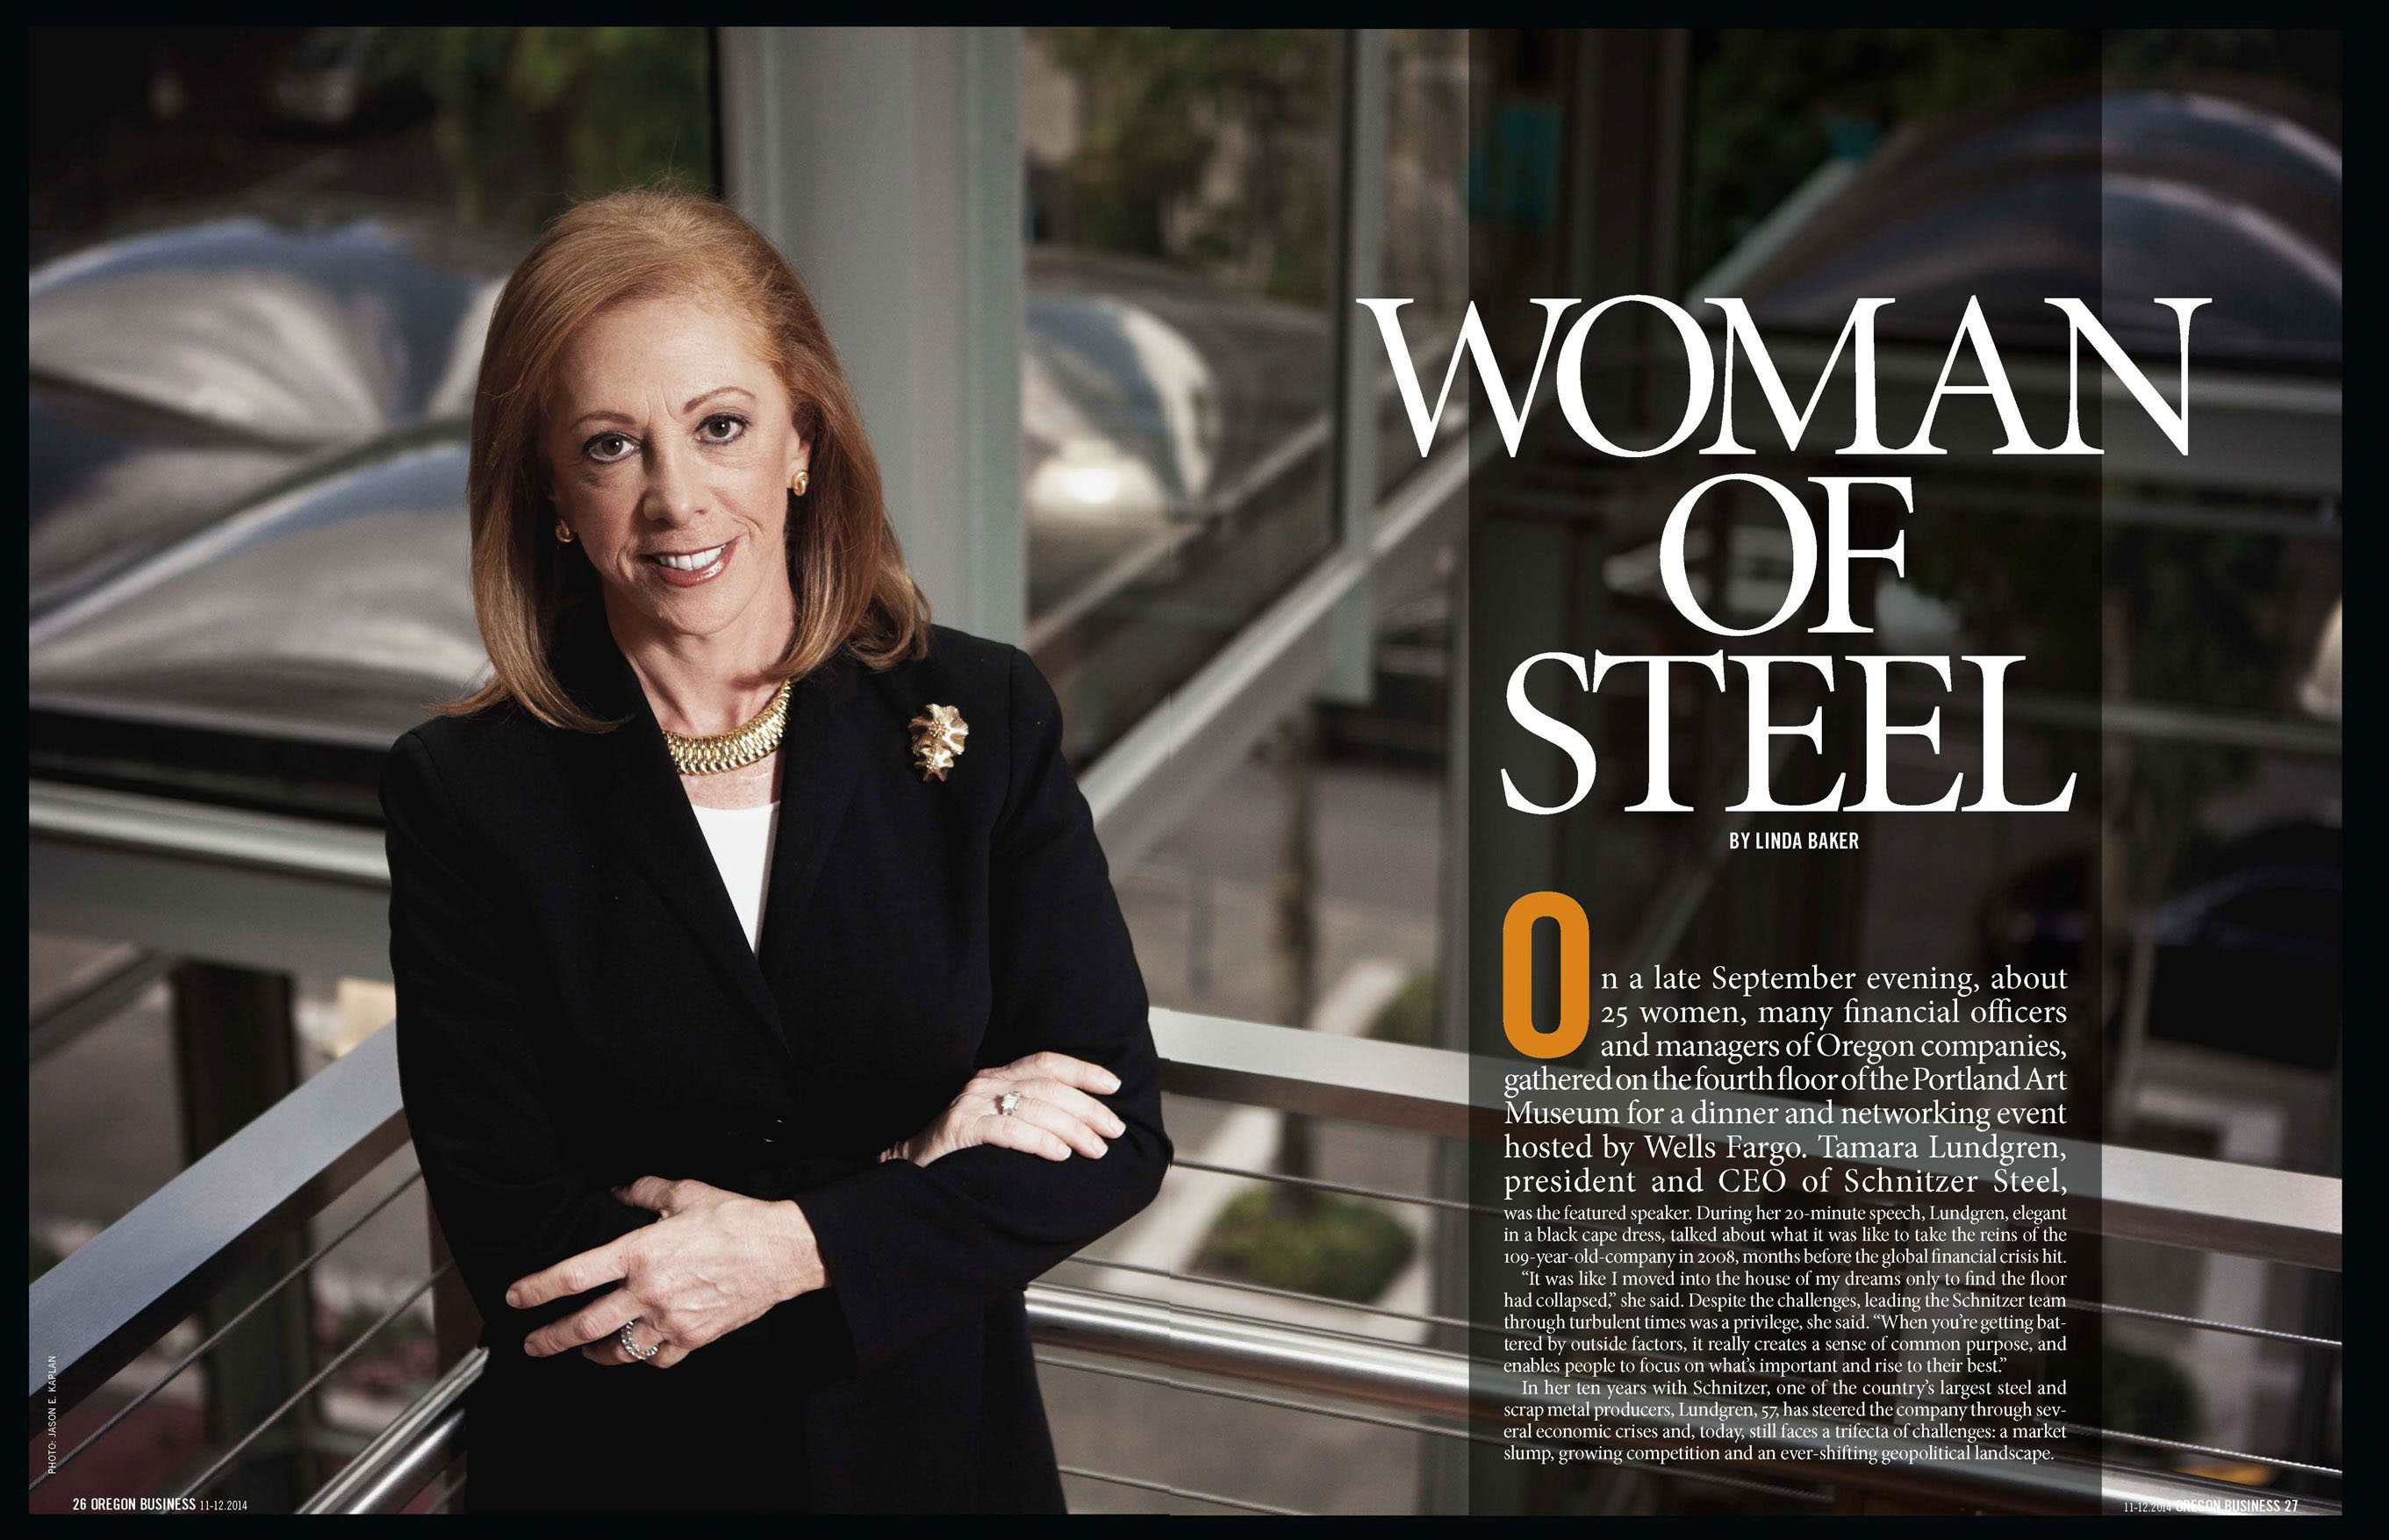 Tamar Lundgren President and CEO of Schnitzer Steel standing portrait